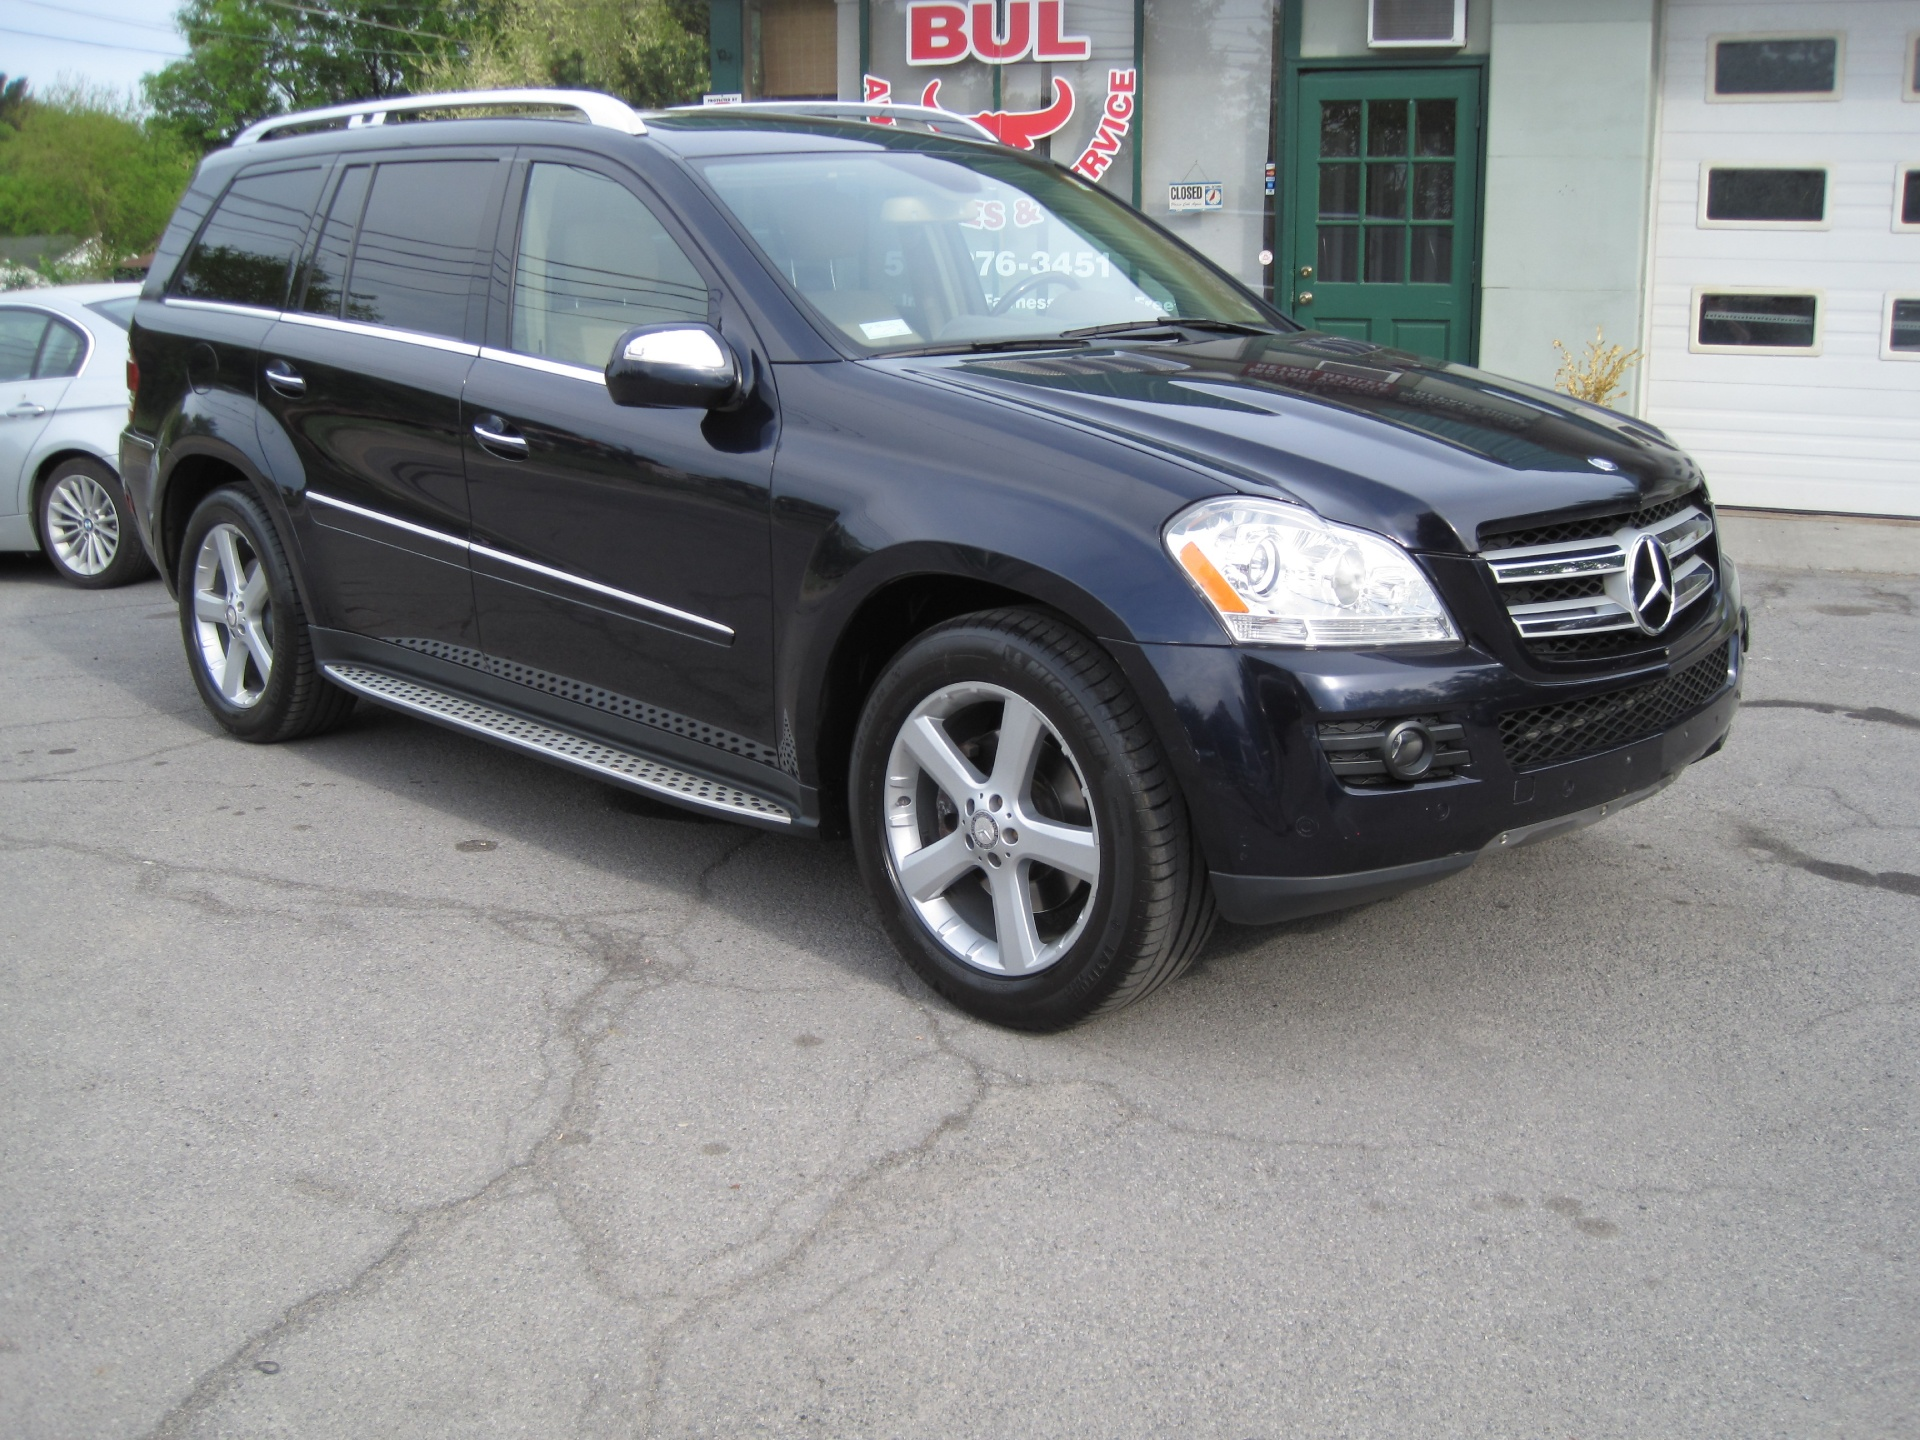 2009 mercedes benz gl class gl450 4matic awd loaded rear for 2009 mercedes benz gl class gl450 4matic